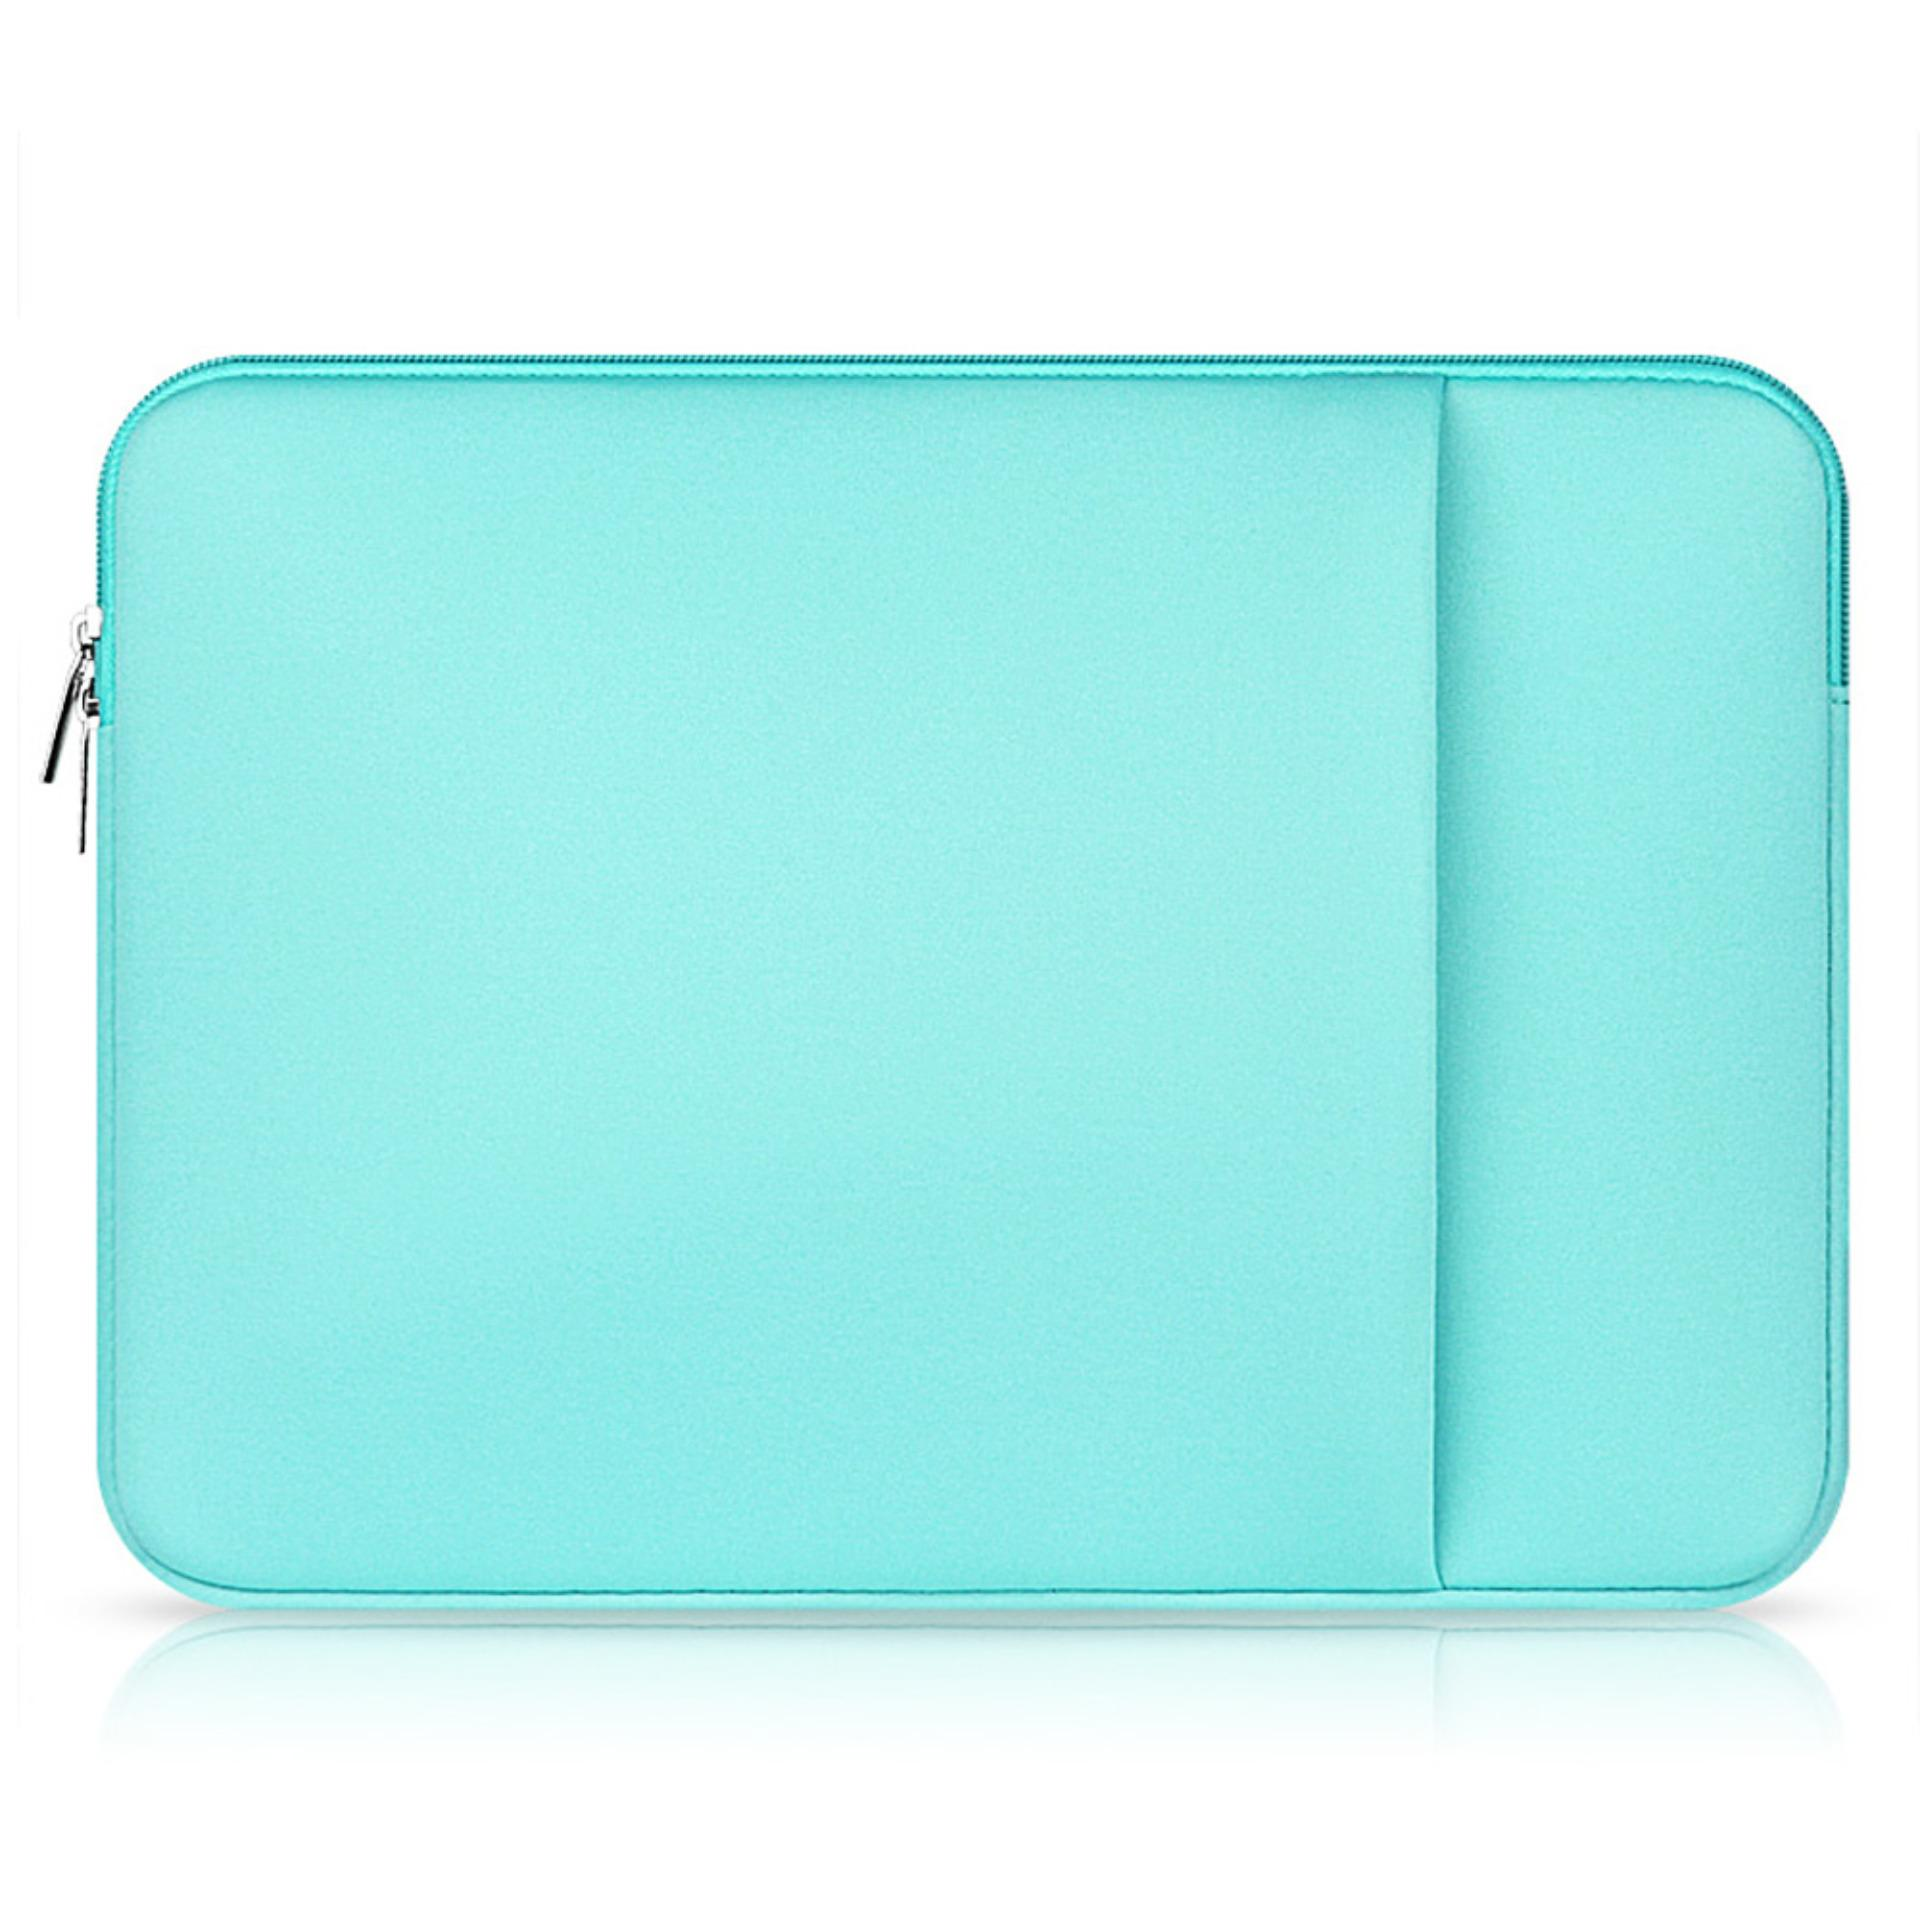 Review Laptop Protective Carrying Sleeve Pouch Bag With Side Pocket For Universal 15 6 Inch Laptop Mint Green Hong Kong Sar Tiongkok